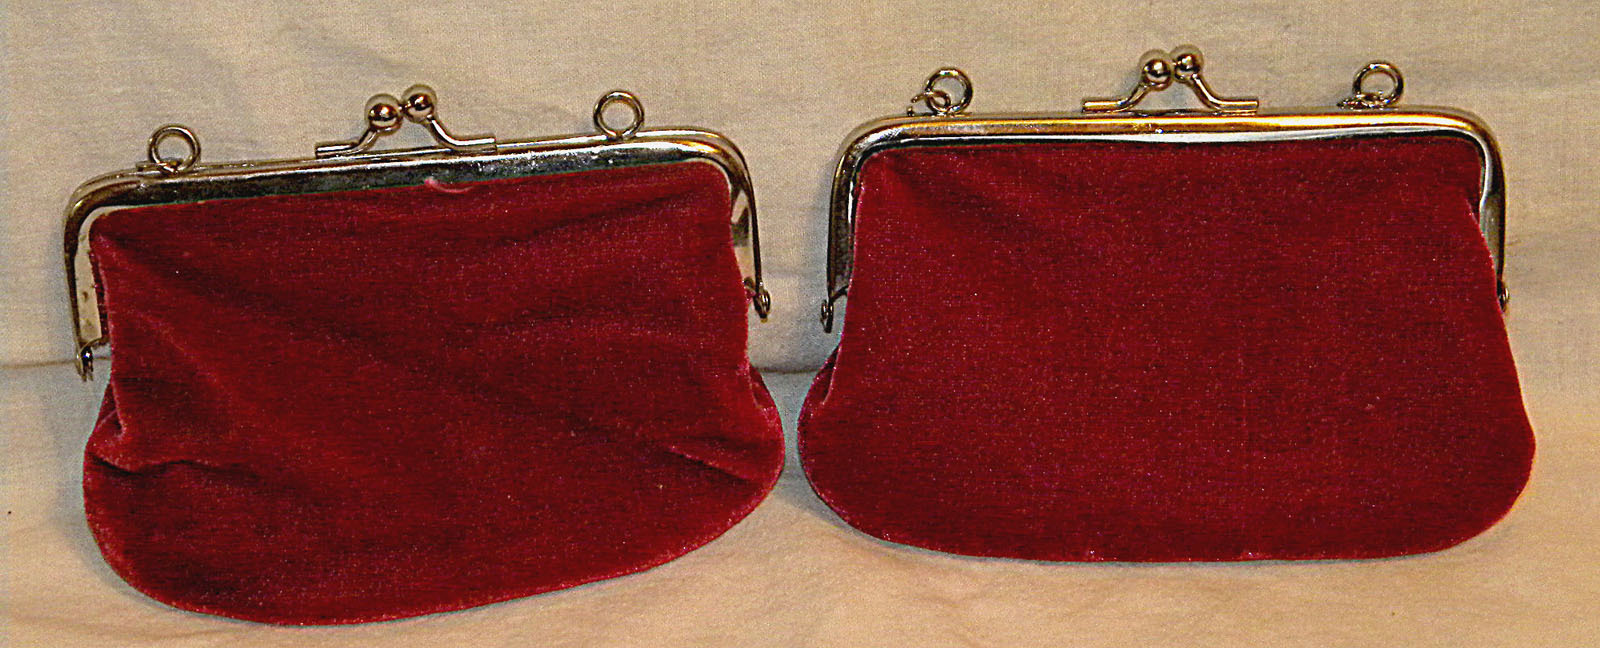 2 vintage Snap Coin Purses Red velvet outside pink satin interior w/ chain rings